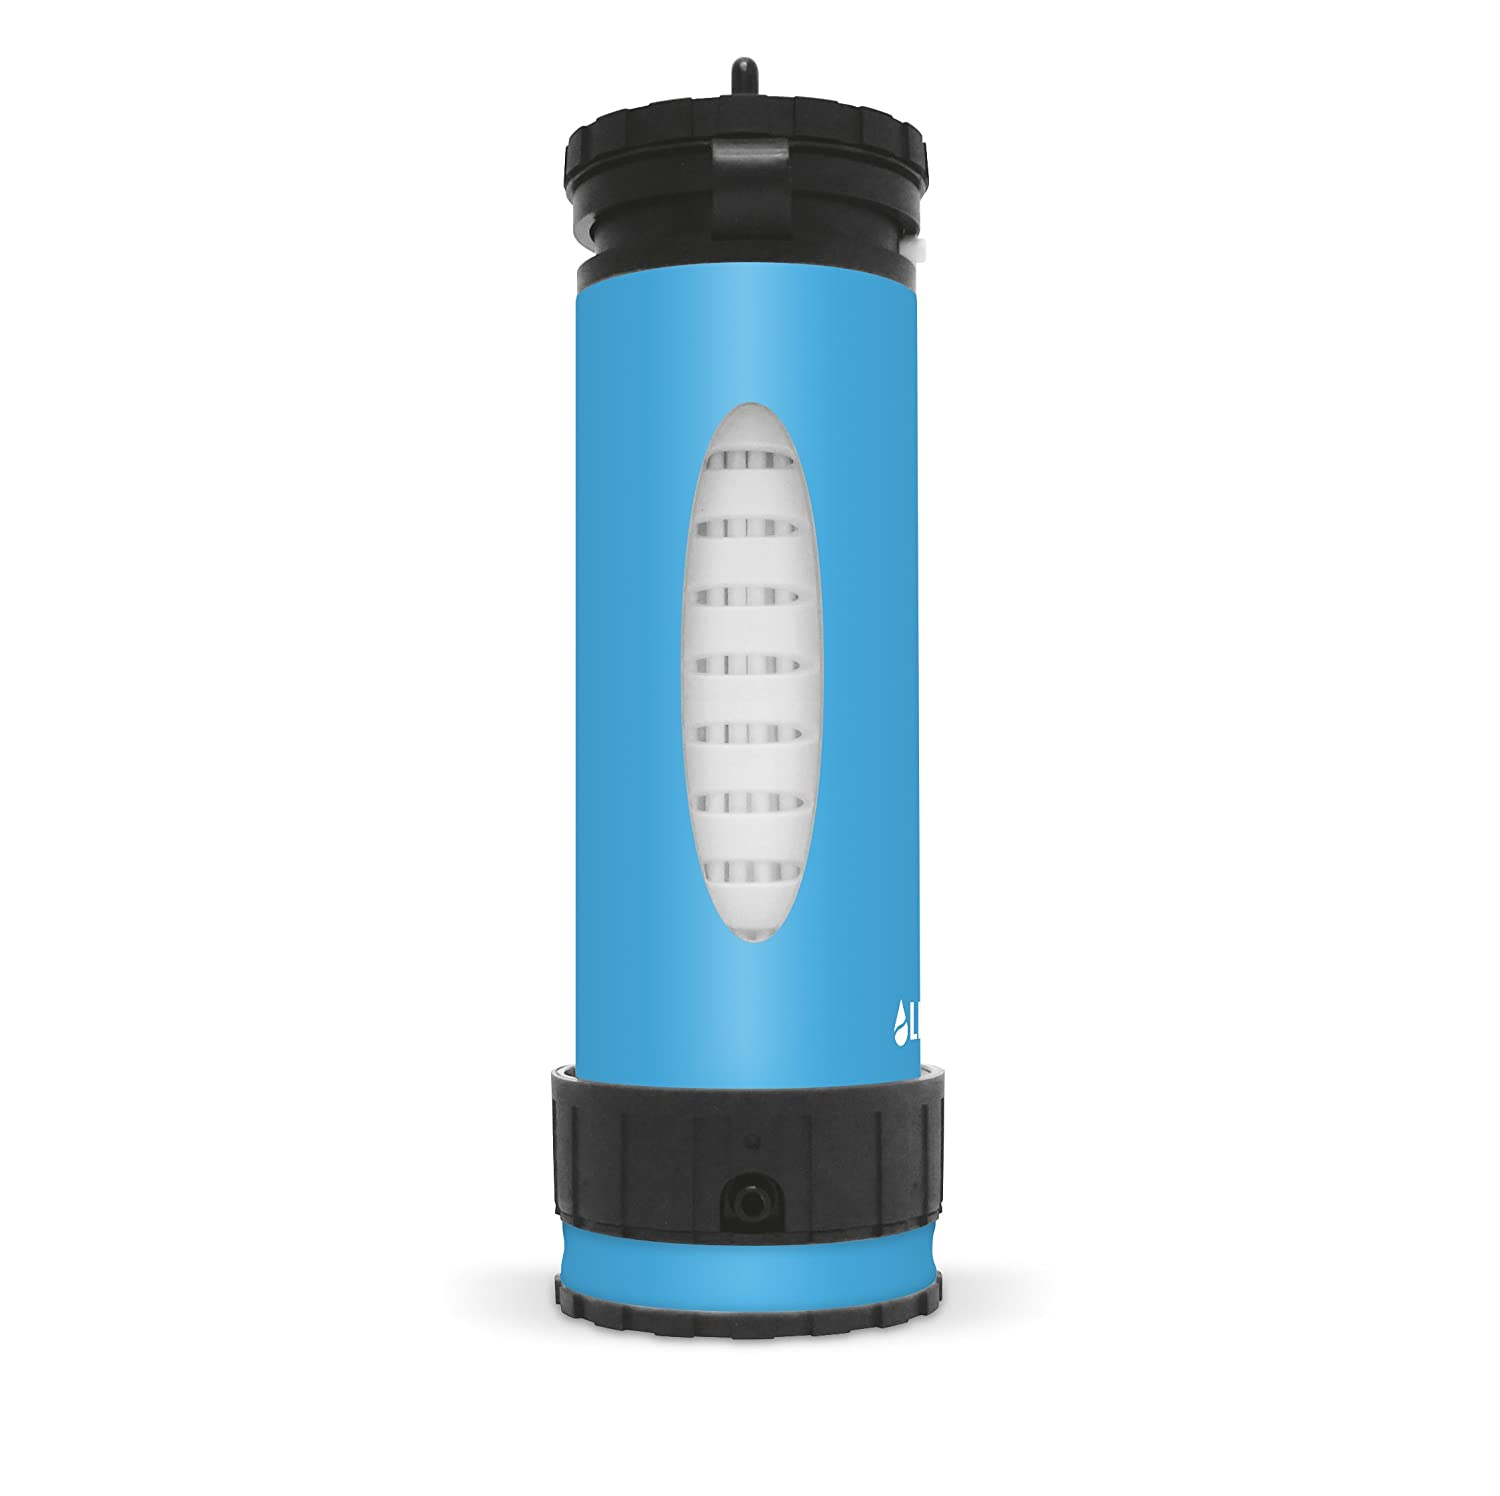 974d9afda8 Amazon.com : LifeSaver Liberty Water Filter Purification Bottle with Inline  Pump & Protective Silicone Sleeve - Eliminates 99.9999% Bacteria, ...